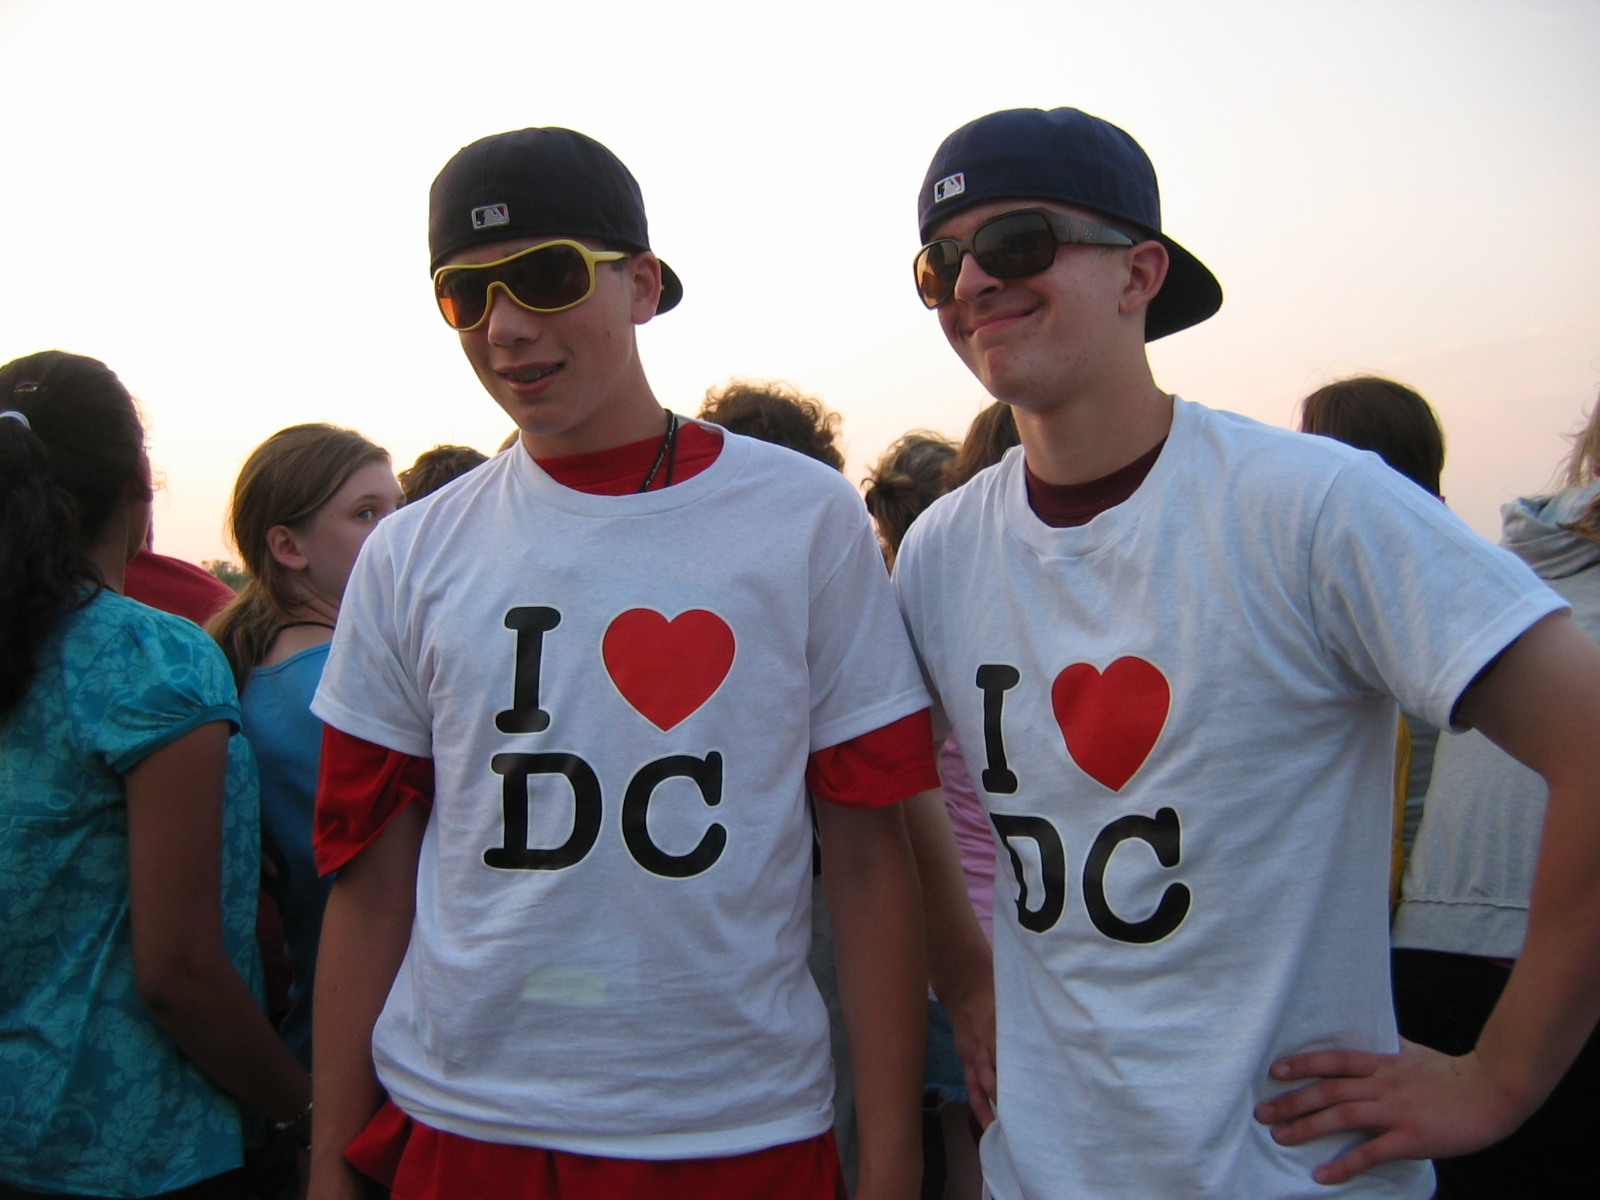 Students wearing I love DC t-shirts